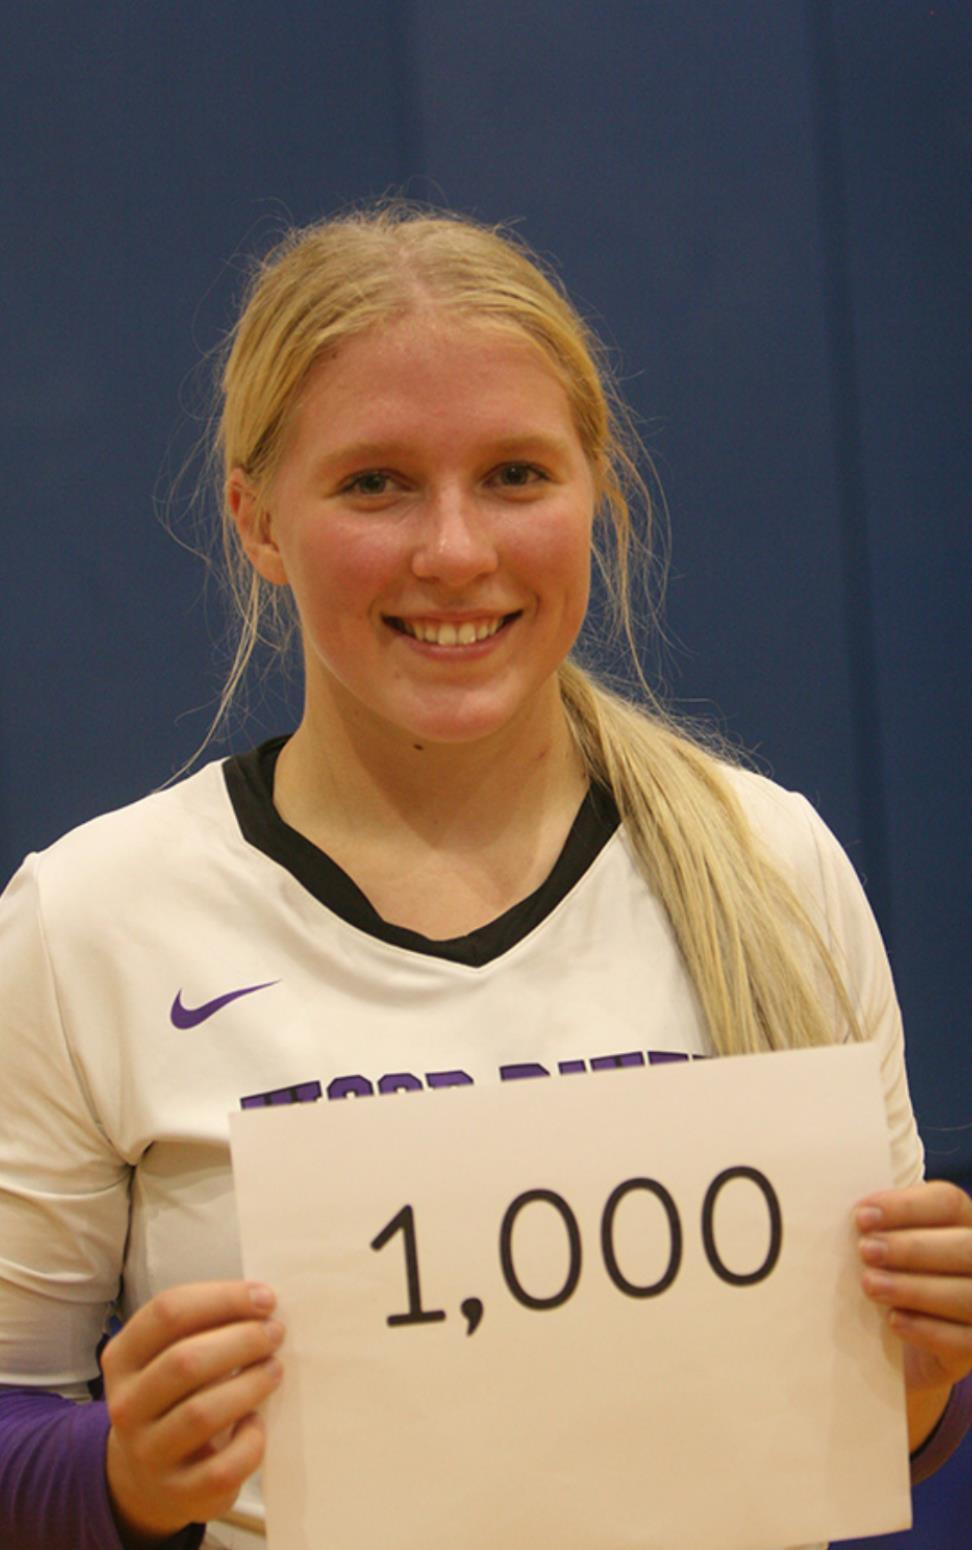 A very significant volleyball milestone was reached by Baylie Codner last week. The senior recorded dig number 1,000, a plateau reached only by a select few of former Eagles, etching her name among the elite. (—photo by Lynn McBride)